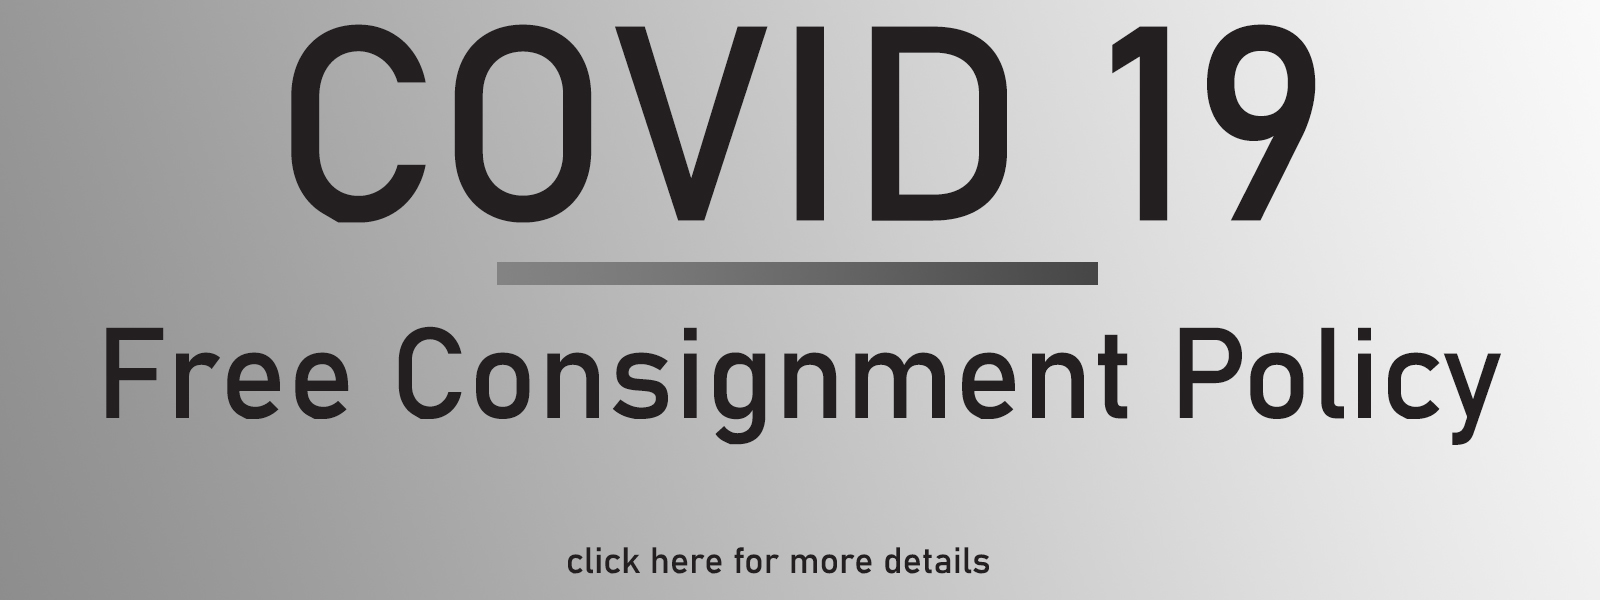 free-consignment-policy.jpg